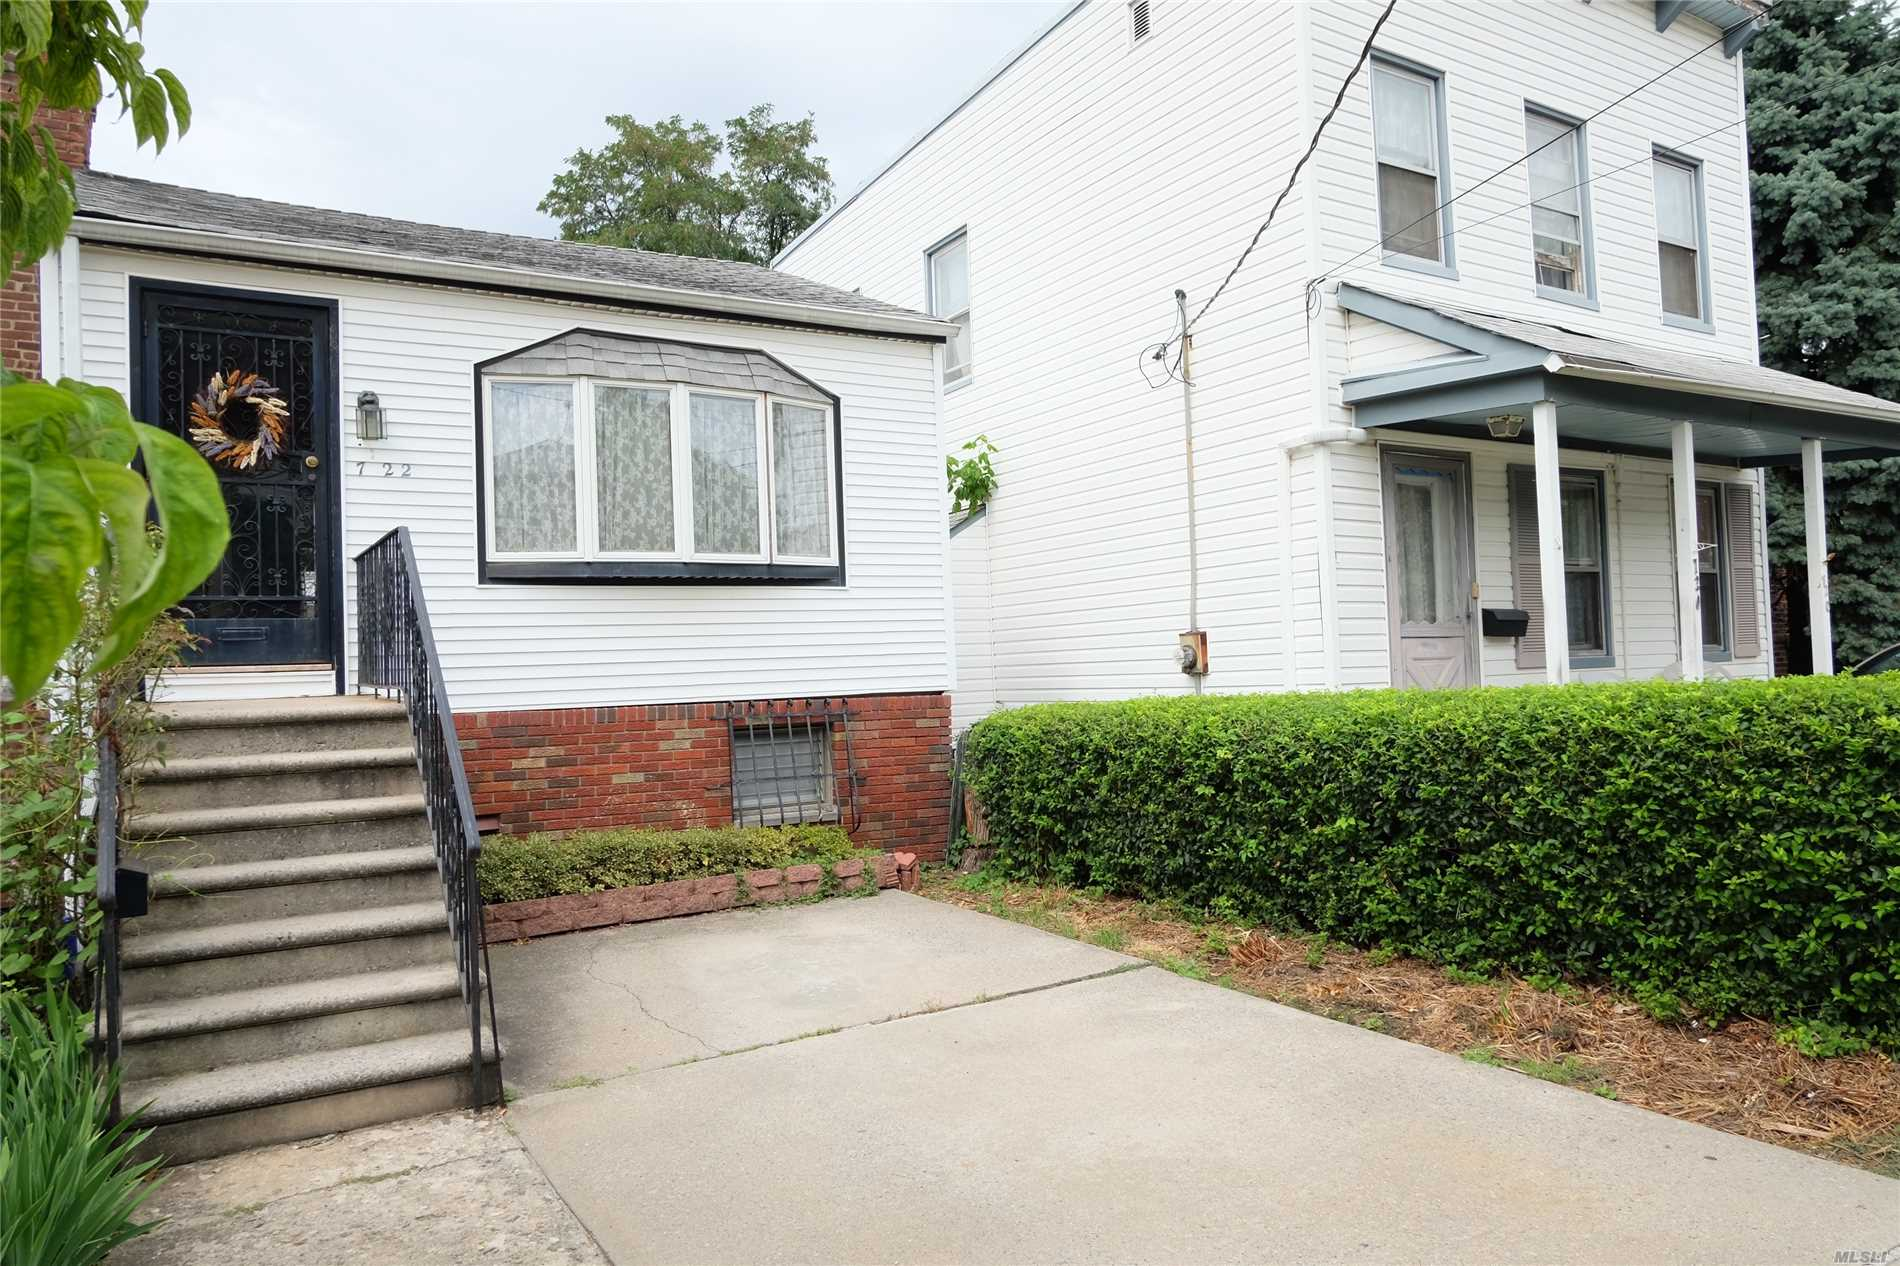 Beautiful , Bright, Renovated, Detached House On 25X 100 Lot. Low Taxes, Large Private Yard. New Kitchen, Shinny Wood Floors, Bedroom Has Sliders To Balcony, Sliders To Backyard.